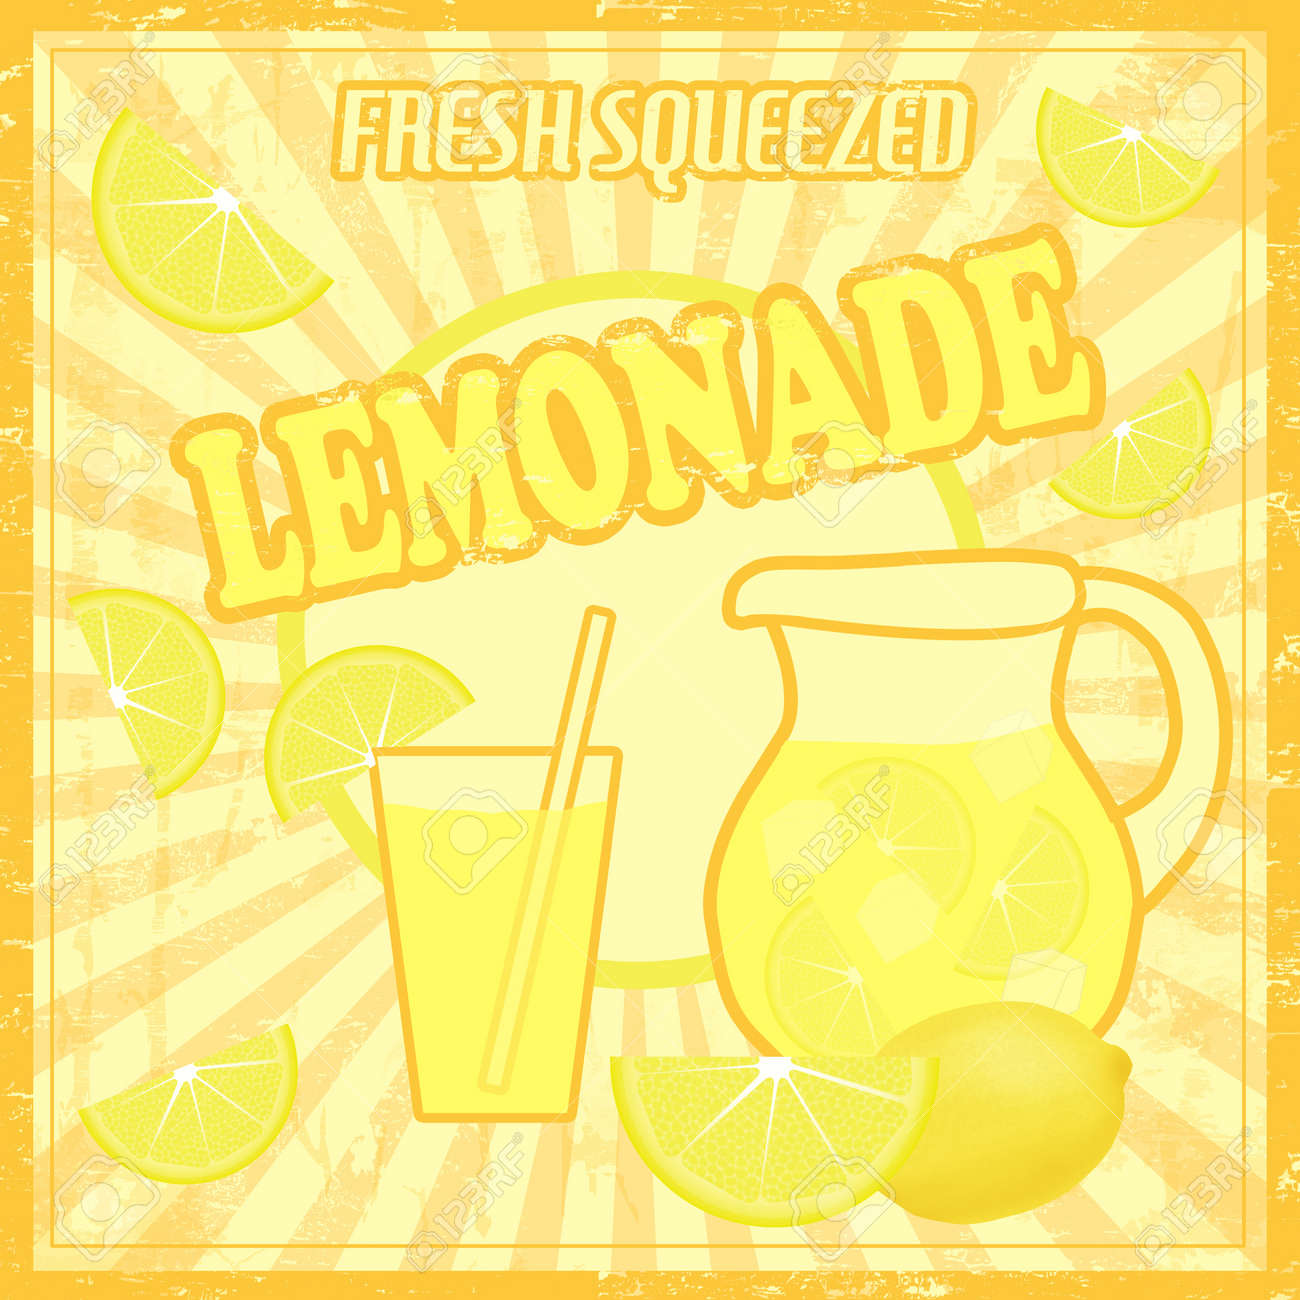 Lemonade Poster In Vintage Style Royalty Free Cliparts, Vectors ...